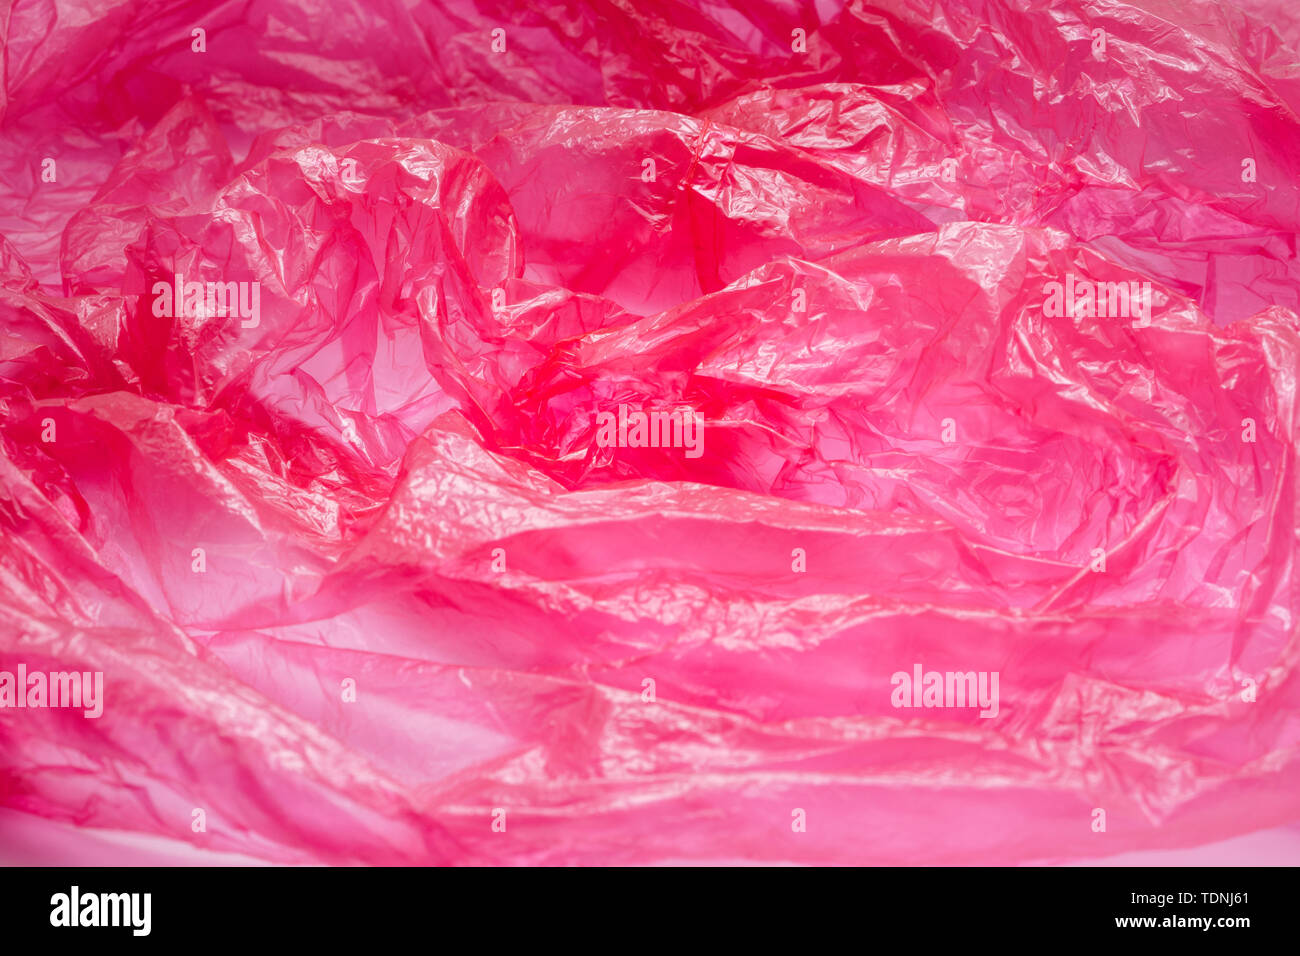 Red Plastic Bag Texture. Abstract Wrinkled Background of Plastic Garbage - Stock Image